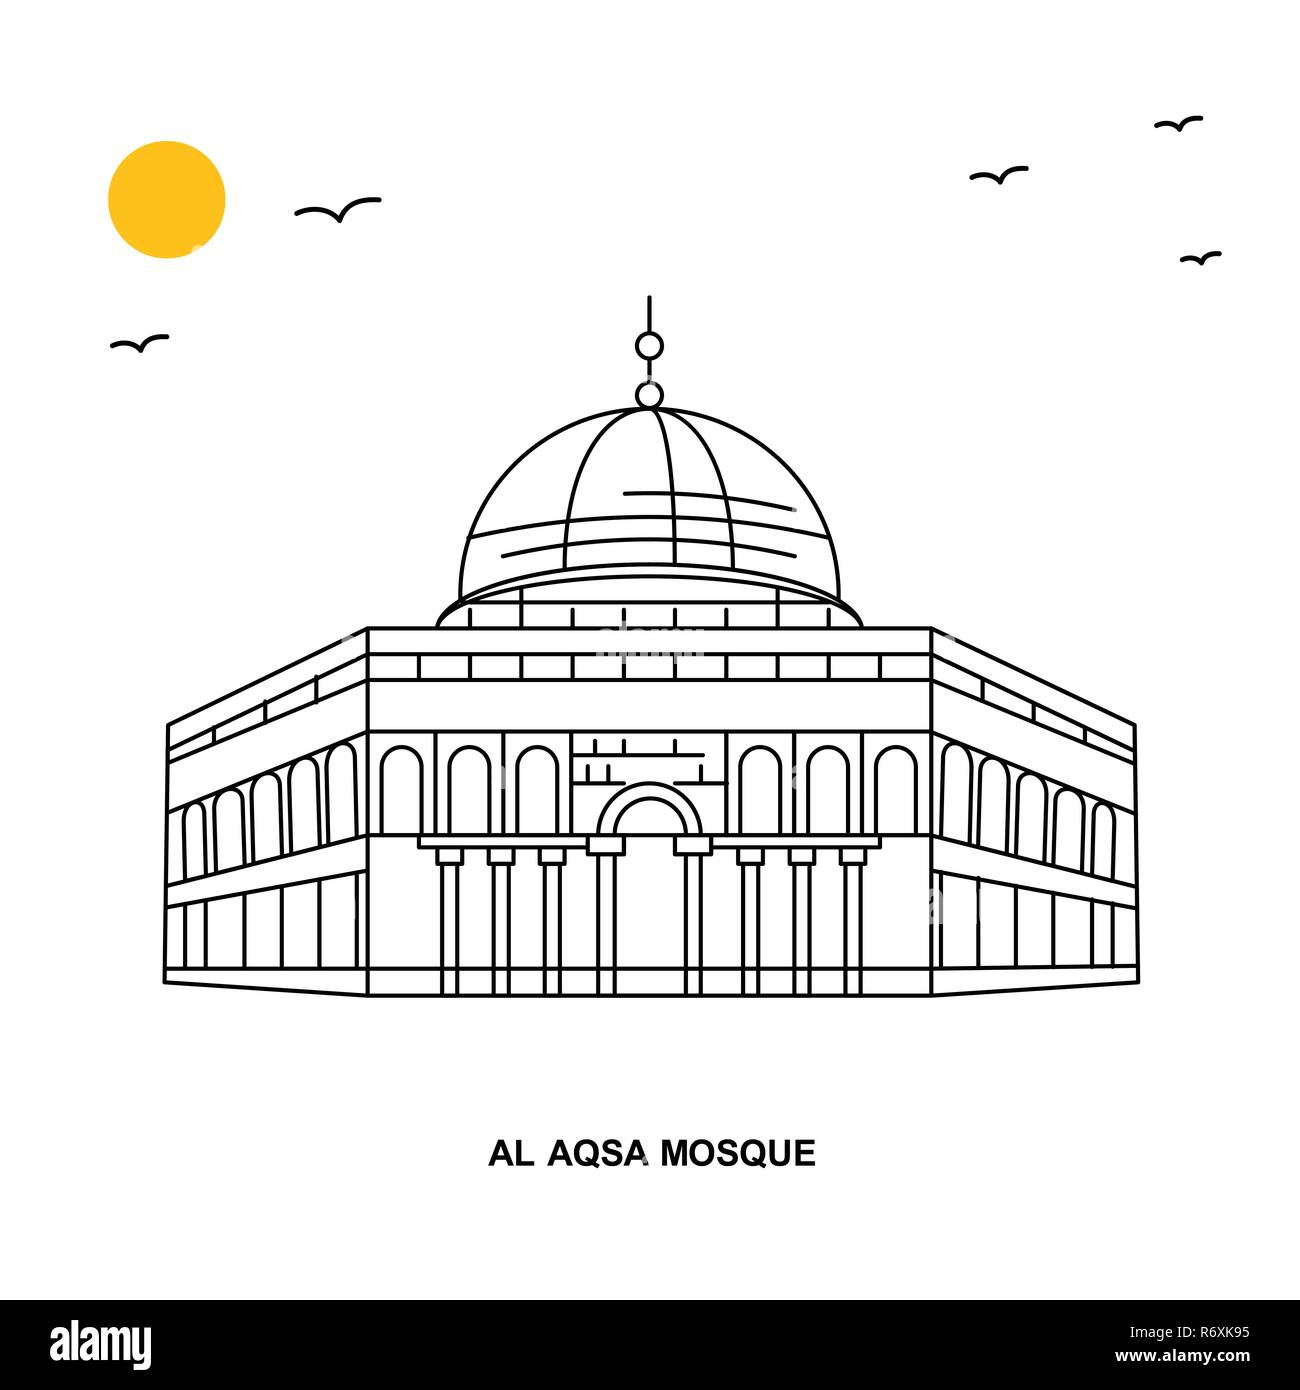 Al Aqsa Mosque Monument World Travel Natural Illustration Background In Line Style Stock Vector Image Art Alamy